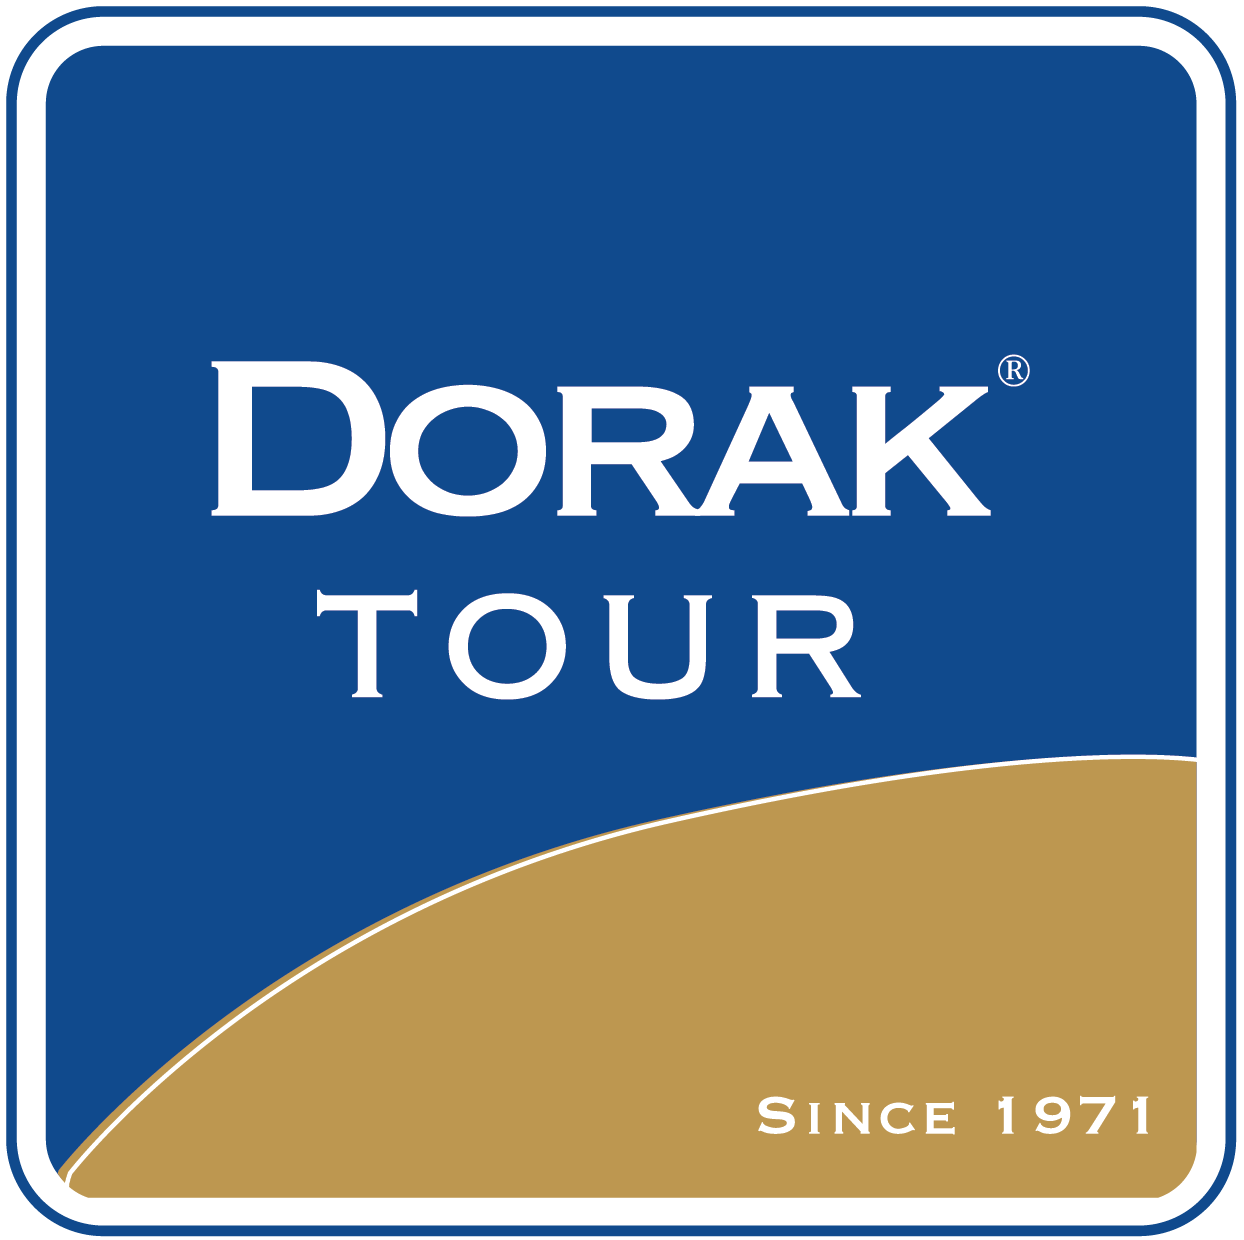 Dorak Tour Since 1971-01.png